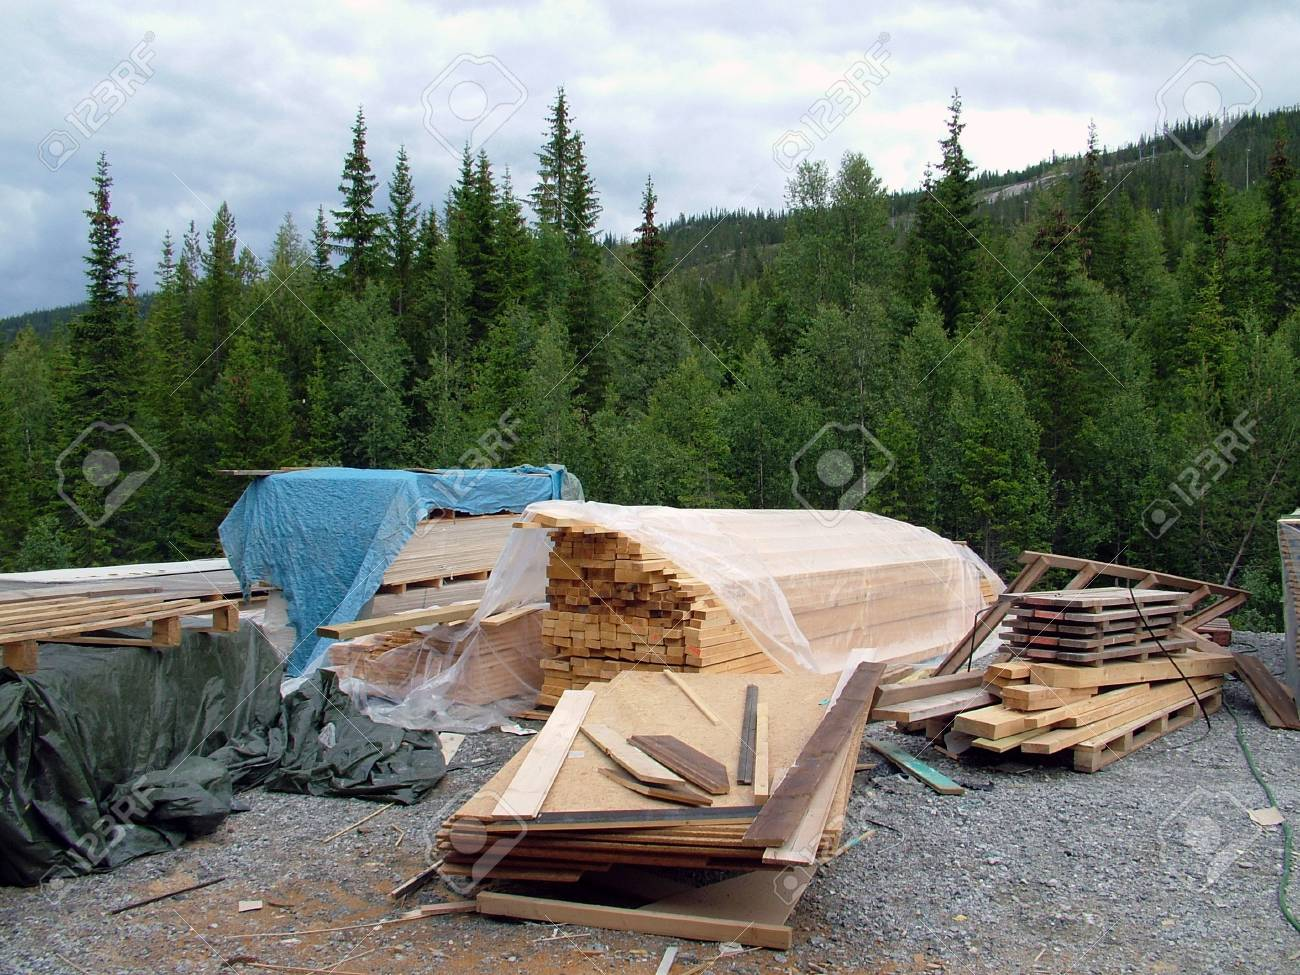 Stacks of Wood Ready For Construction Use Stock Photo - 1885048